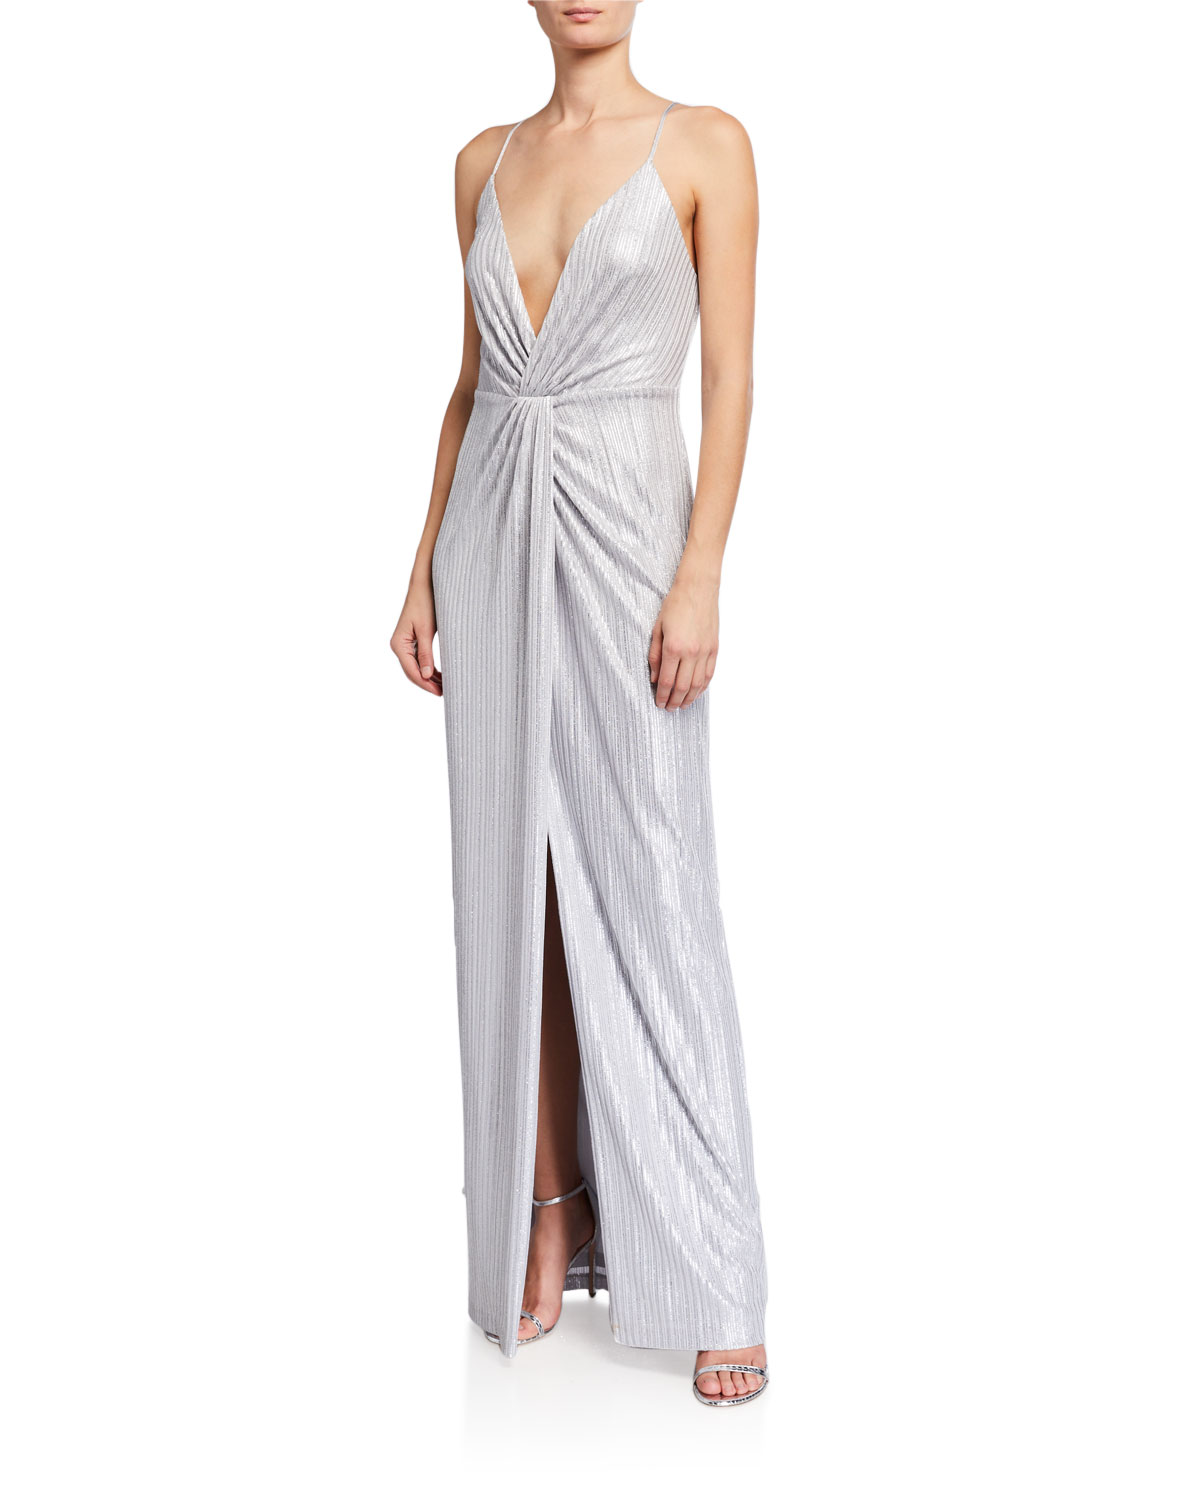 Aidan by Aidan Mattox Twist Front Deep V-Neck Foiled Knit Sleeveless Gown